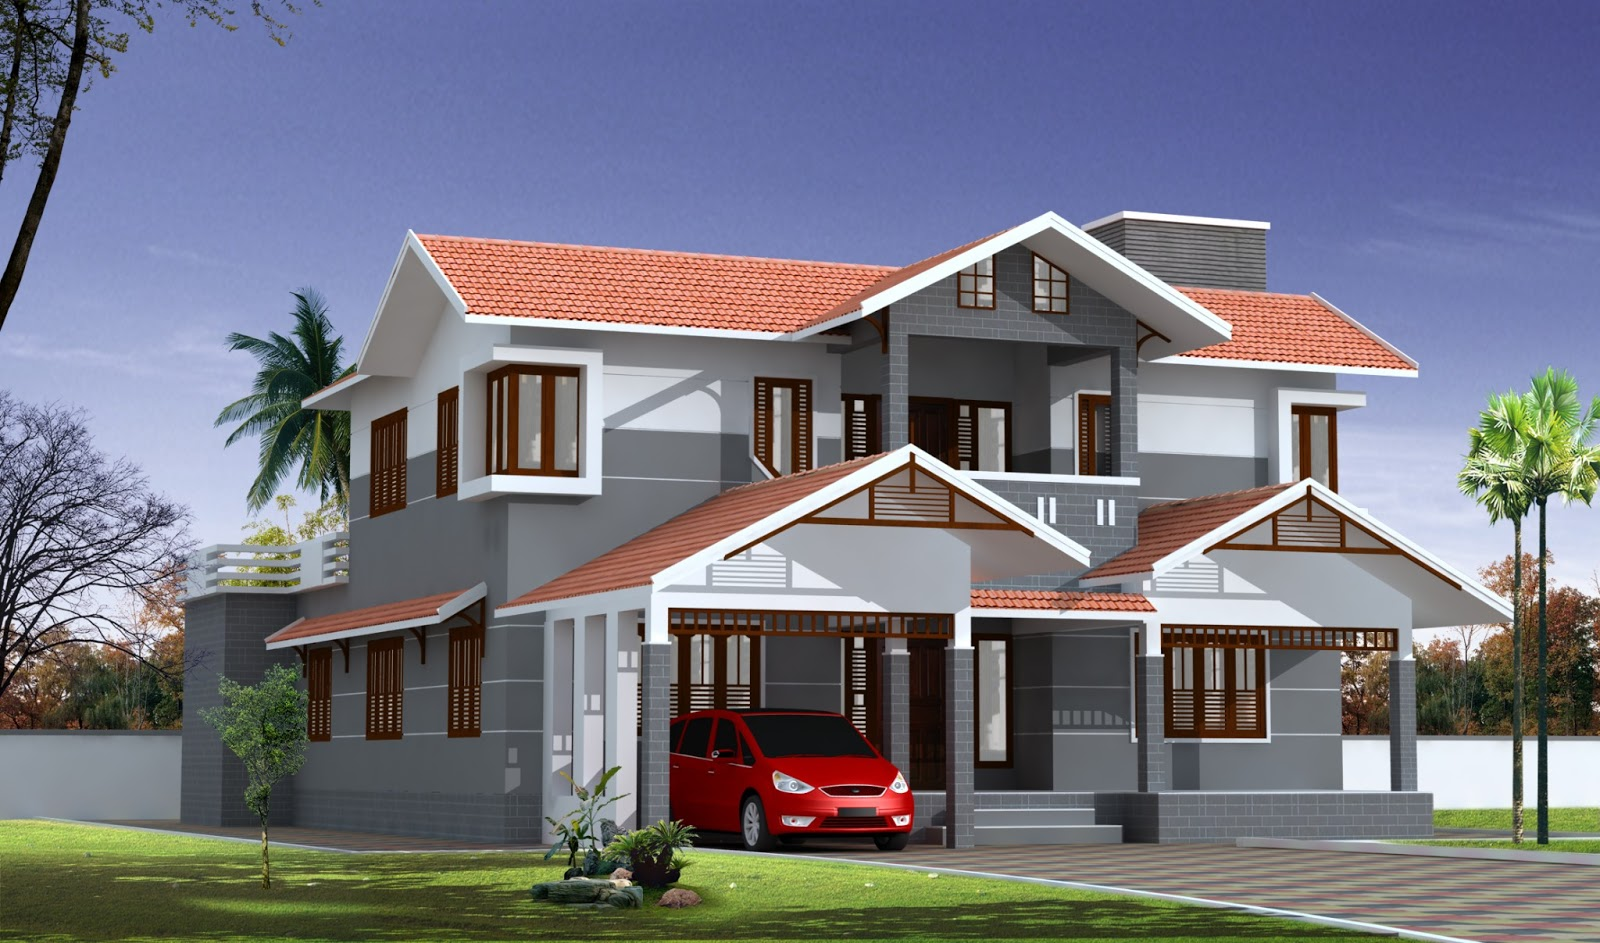 Build a building latest home designs for House gallery design